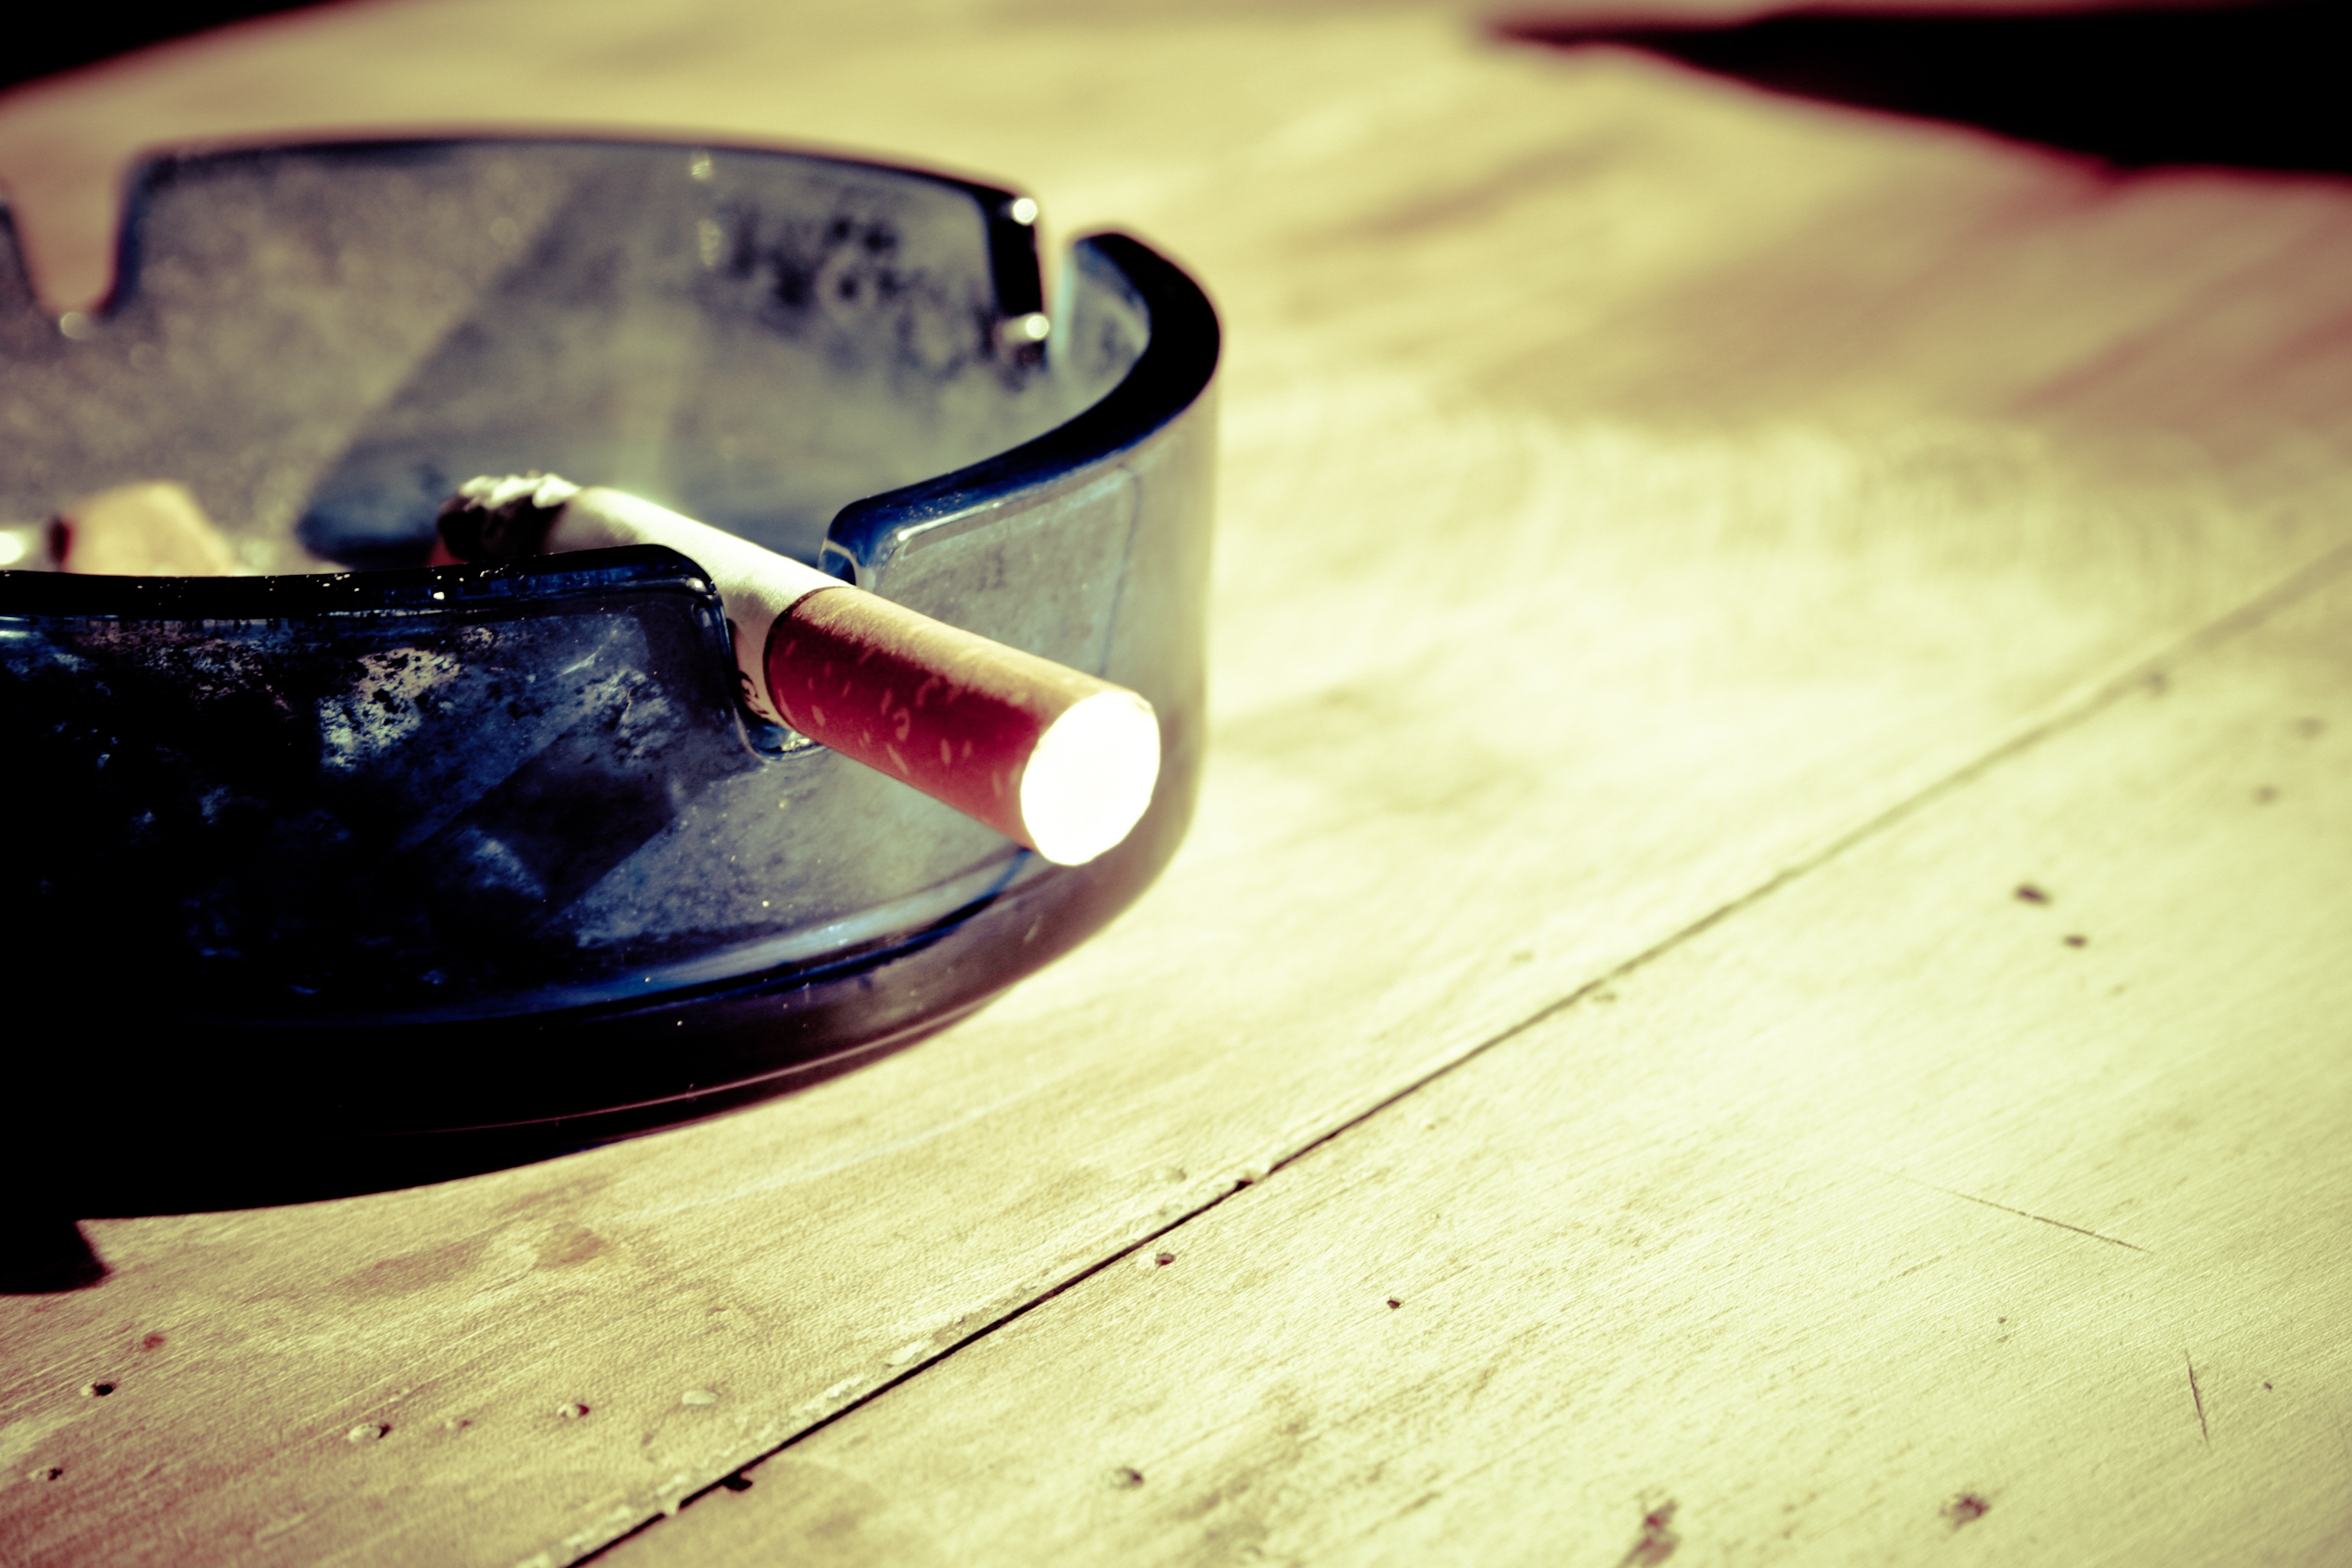 Lit Cigarette in Ashtray